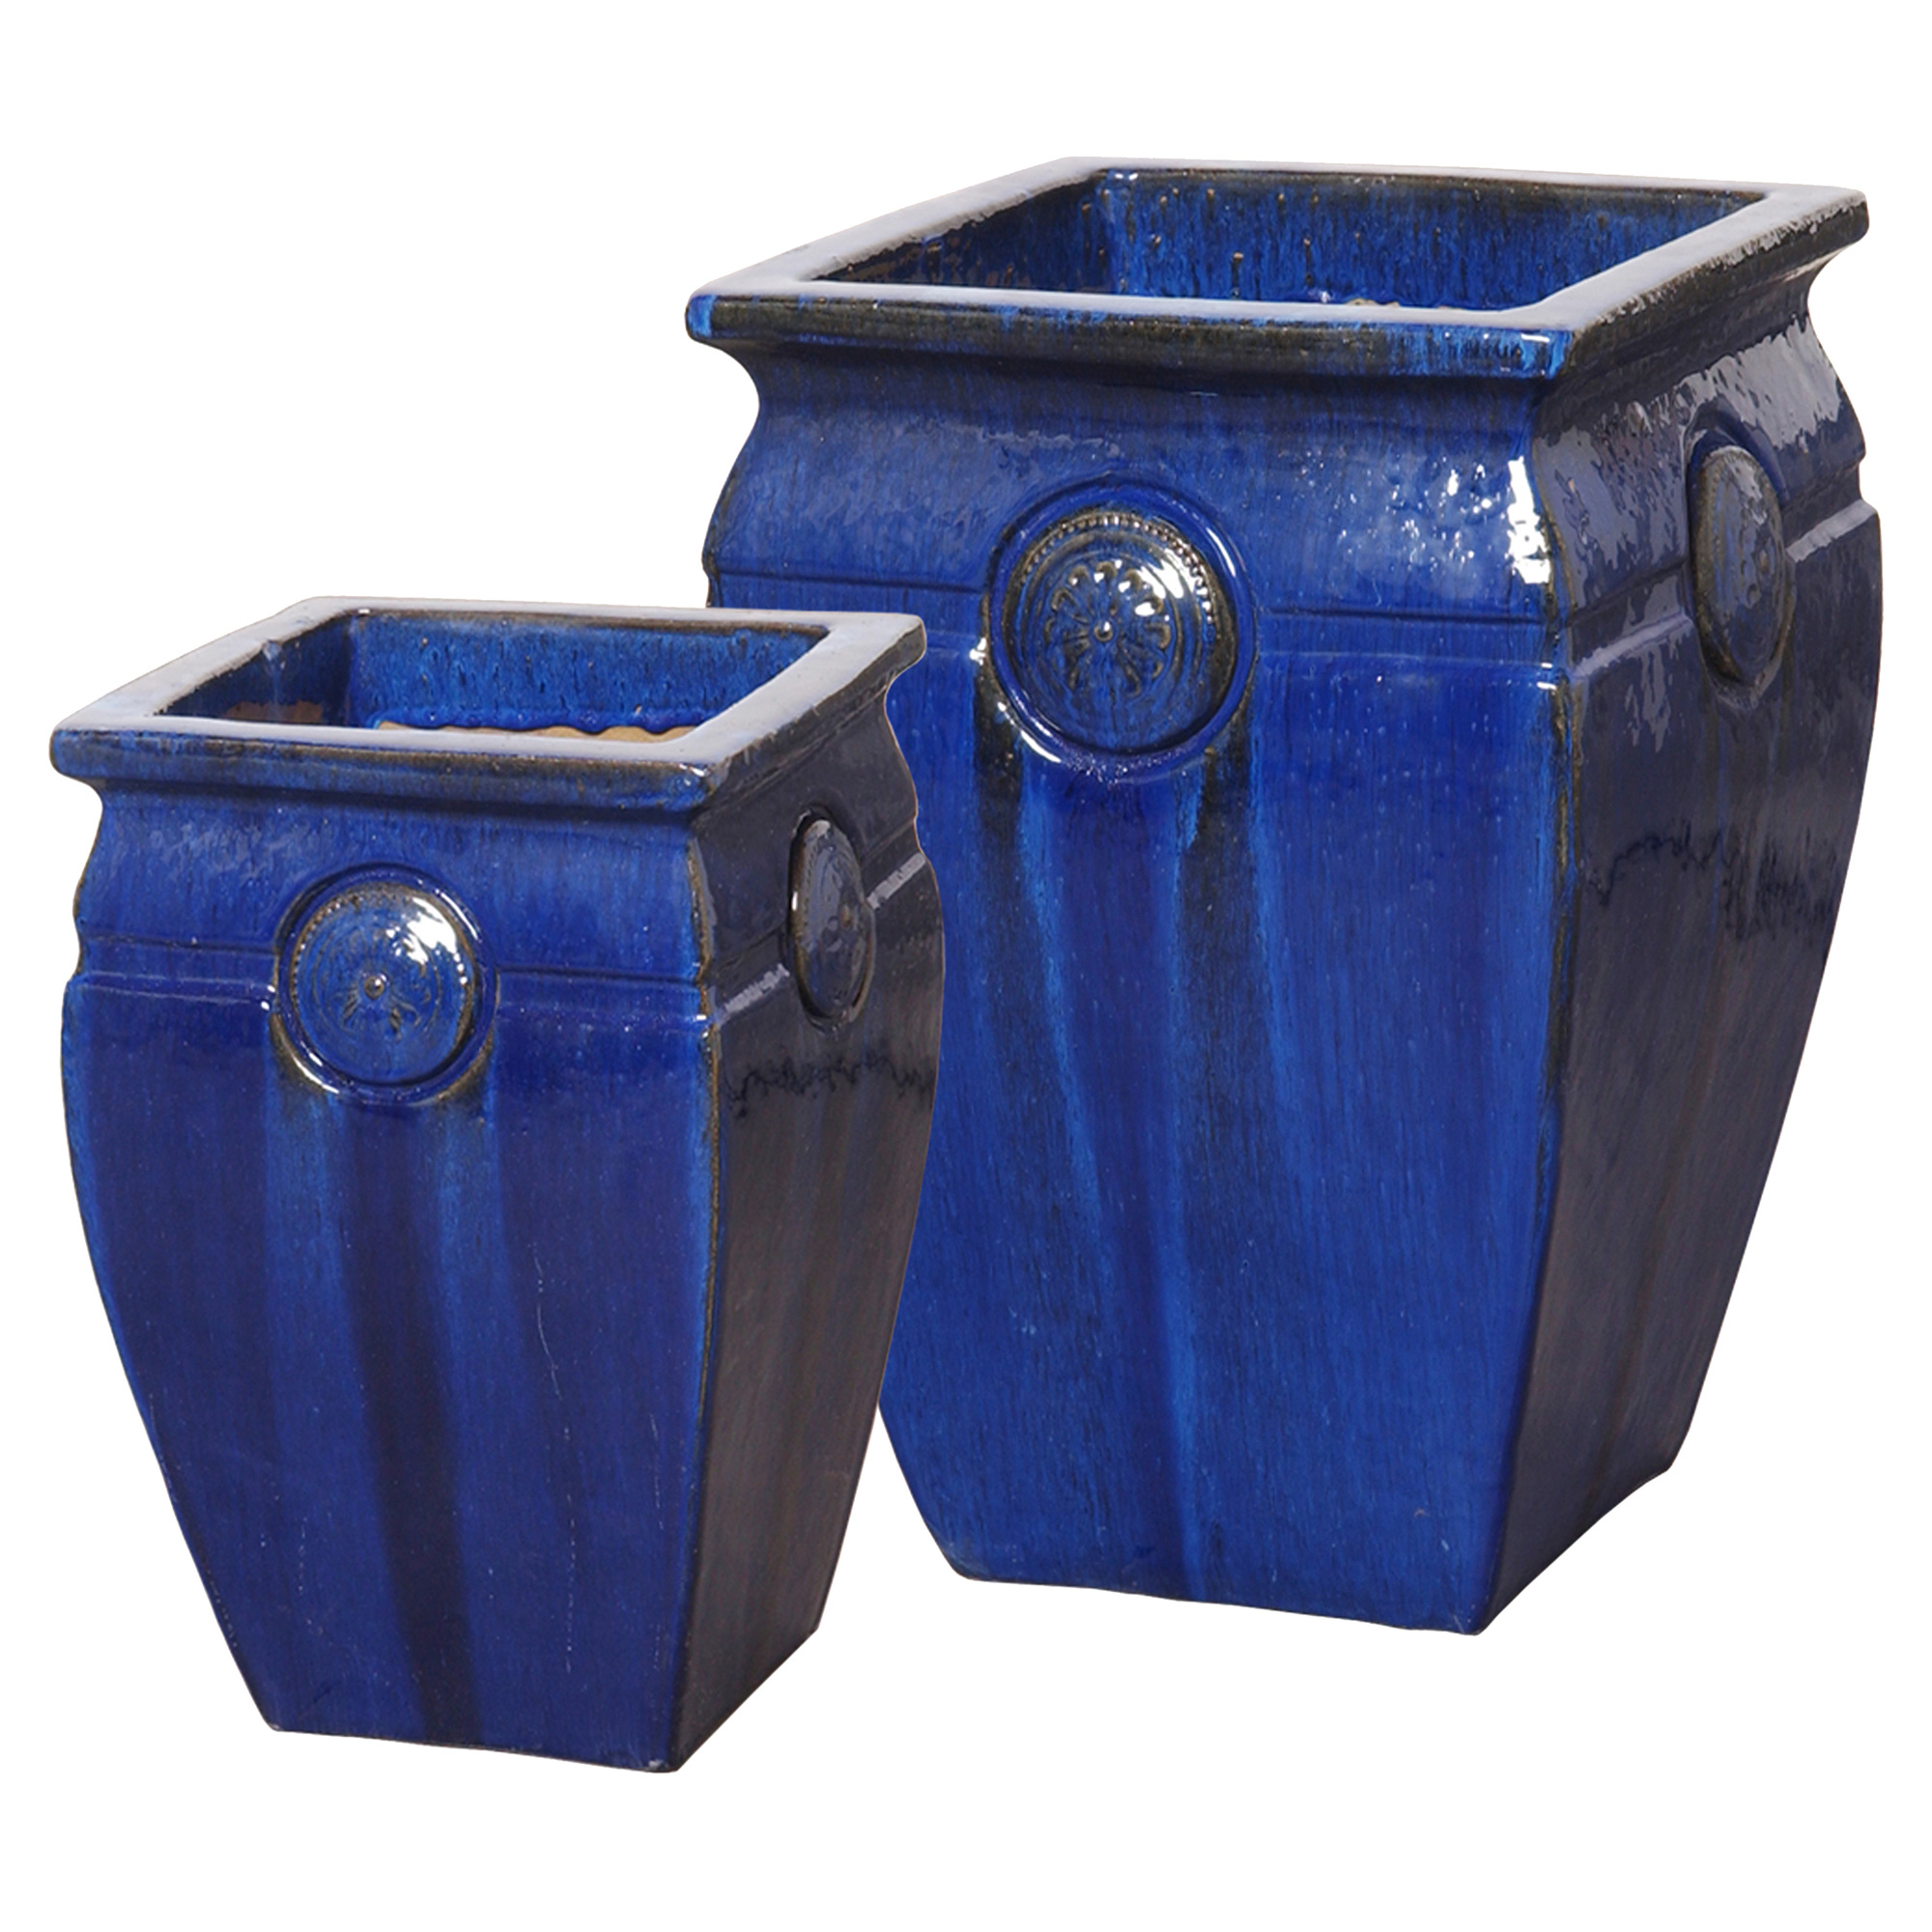 Medallion French Country Blue Ceramic Pots - Set of 2